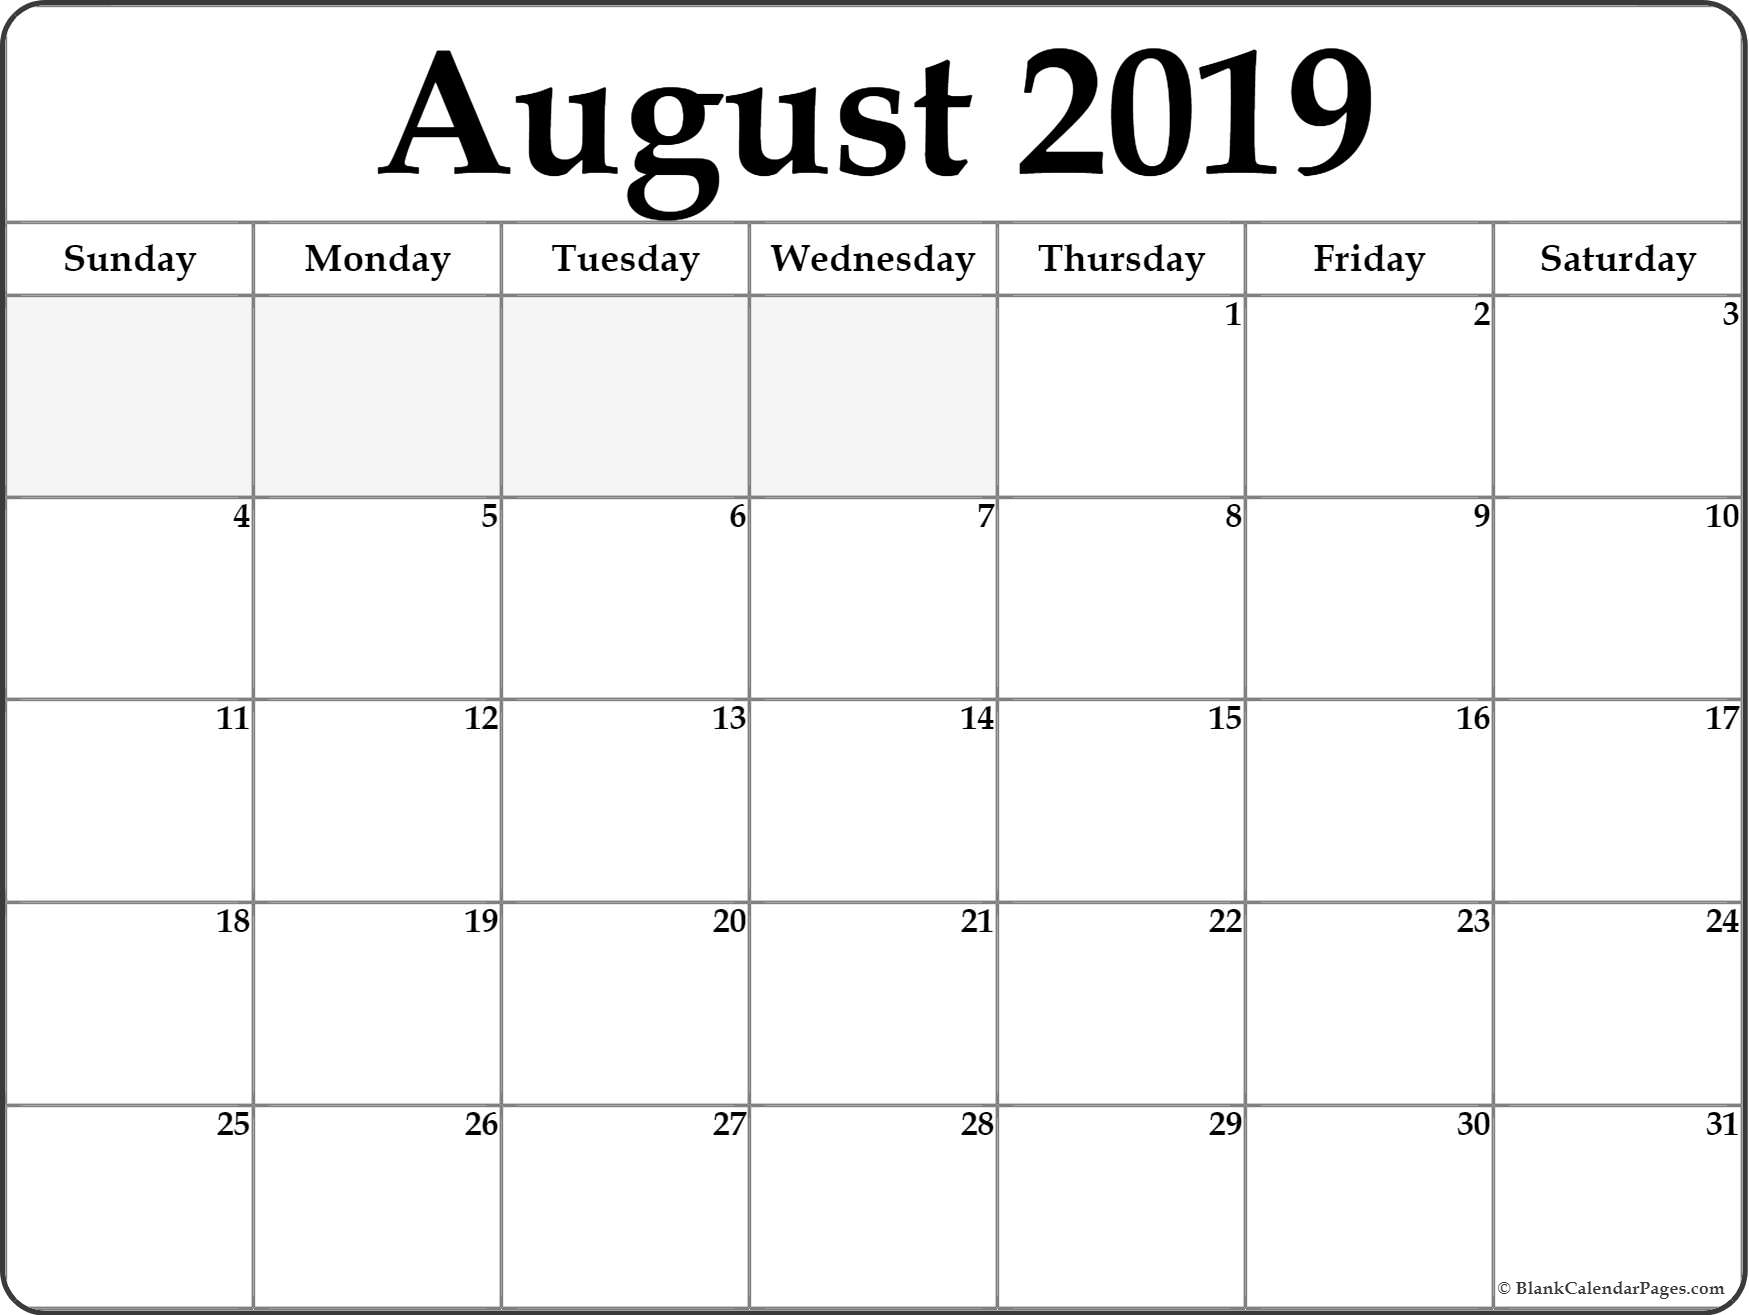 August 2019 Calendar | Free Printable Monthly Calendars within August Blank Calendar Printable